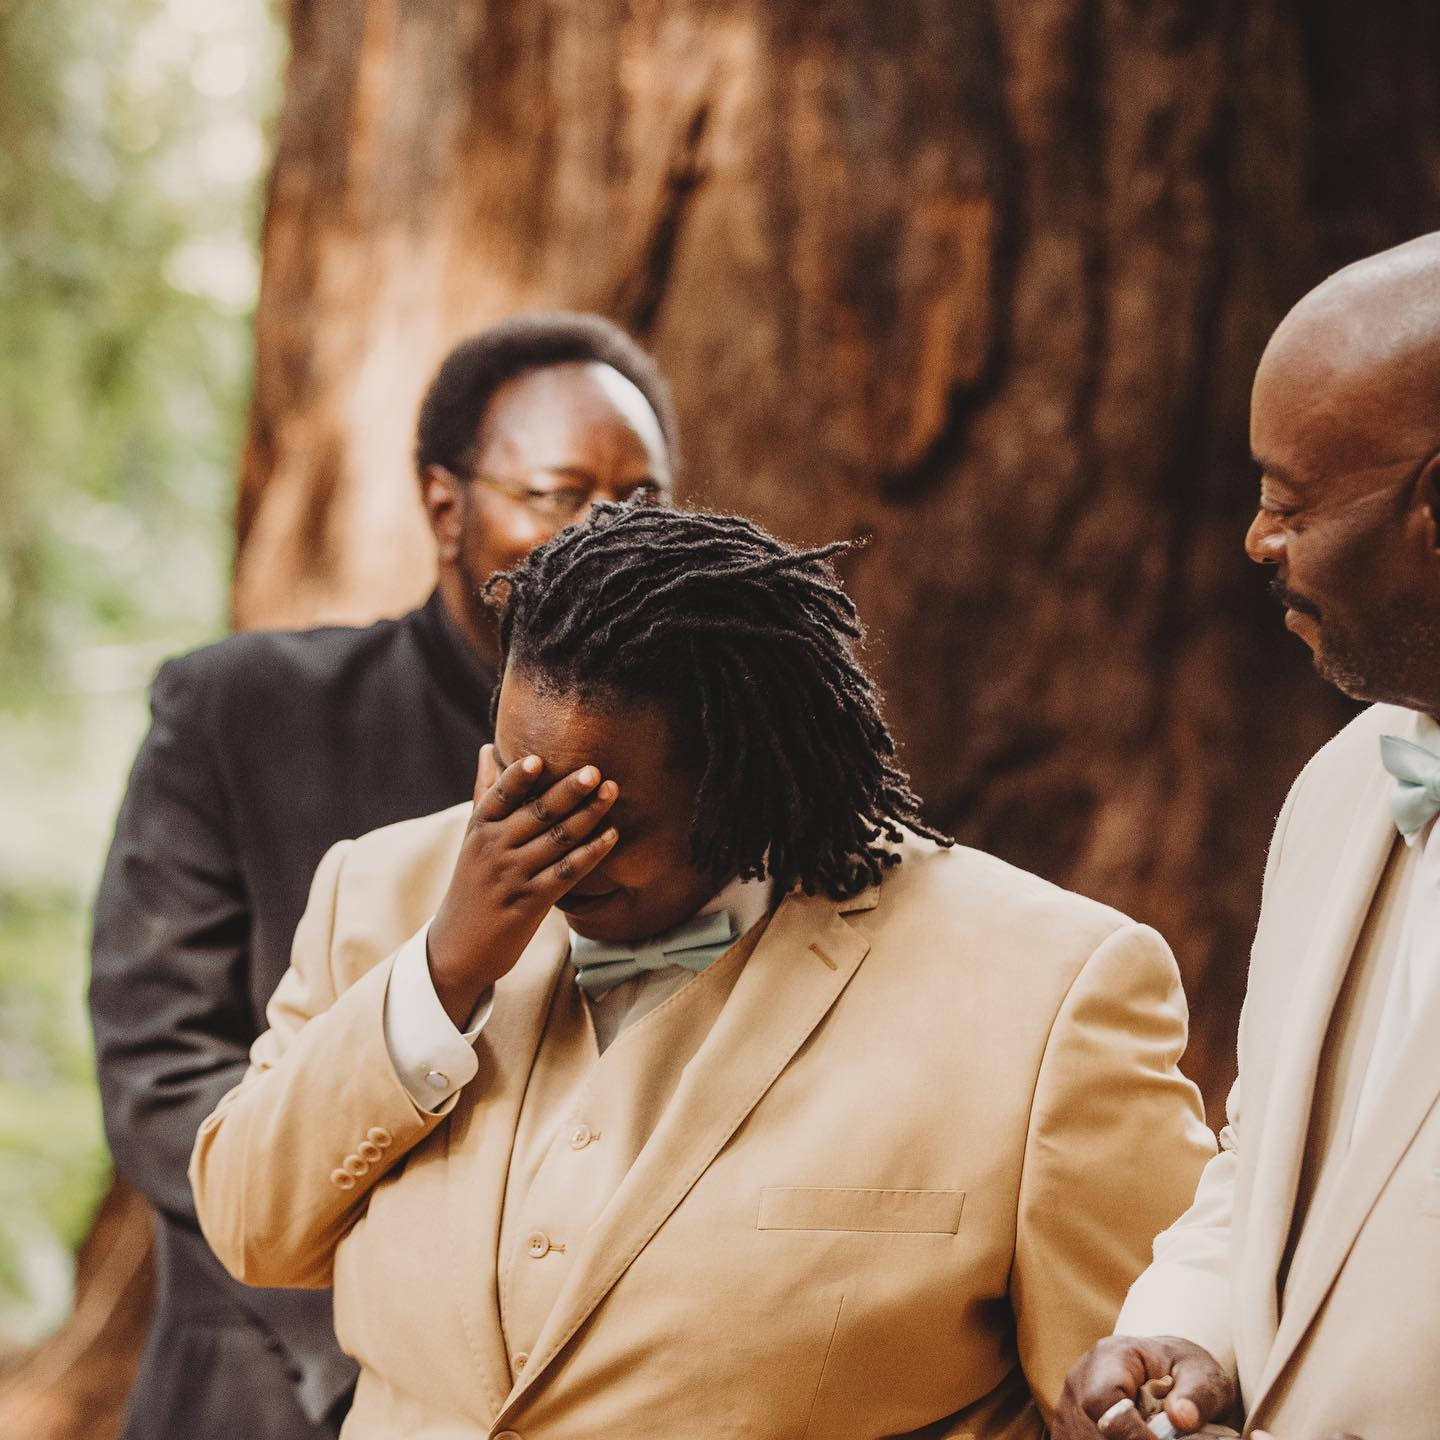 A portrait of a person of color getting emotional at a wedding